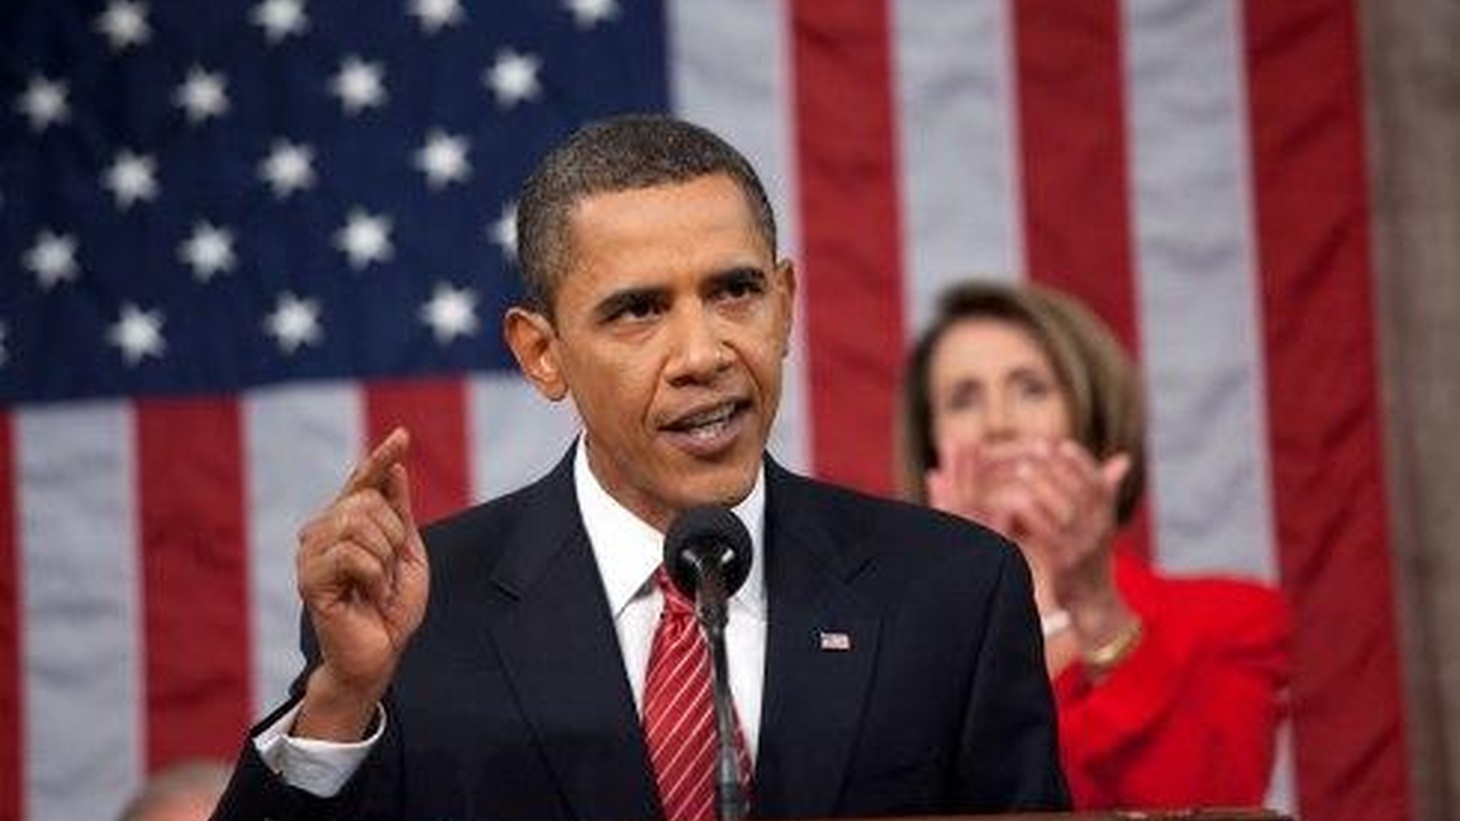 """Last night's address to Congress was called a """"make or break"""" moment for the presidency of Barack Obama, but it's one part of an ongoing process. We look at the speech, the immediate reaction and what might happen next. Also, Sarah Palin, death panels and Afghanistan."""